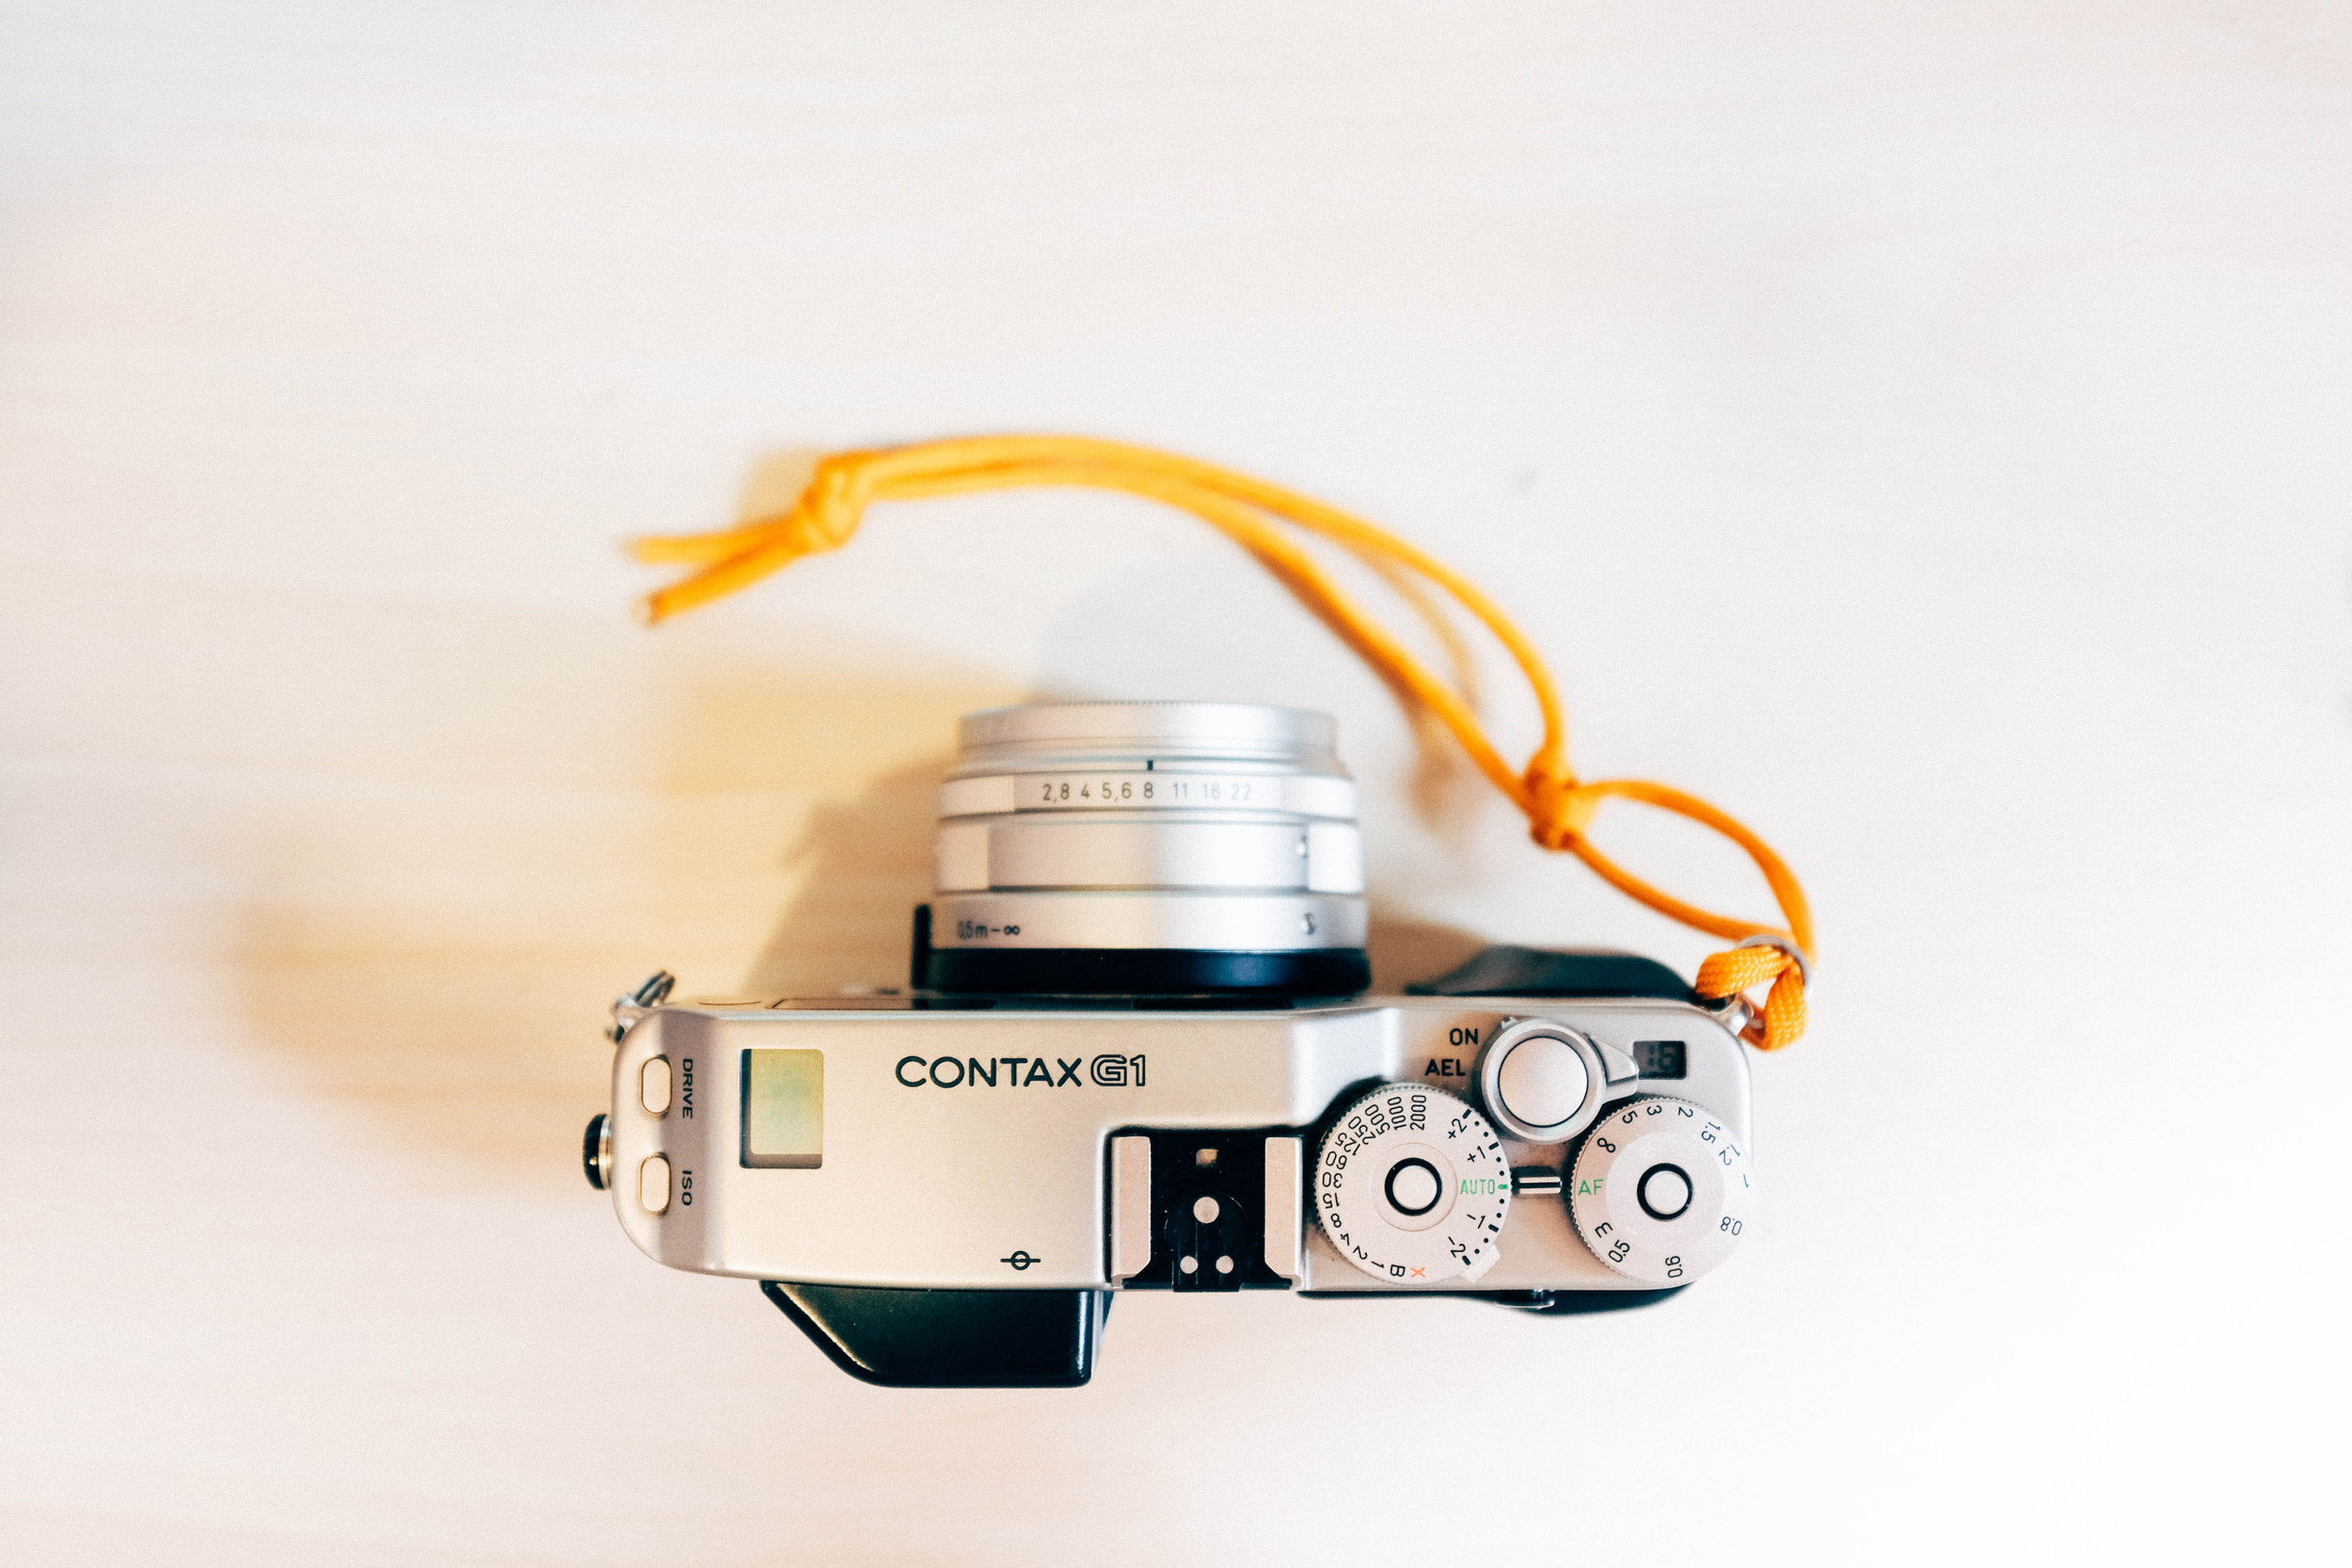 I made yellow paracord adjustable wrist straps for the G1 and the X100T :)